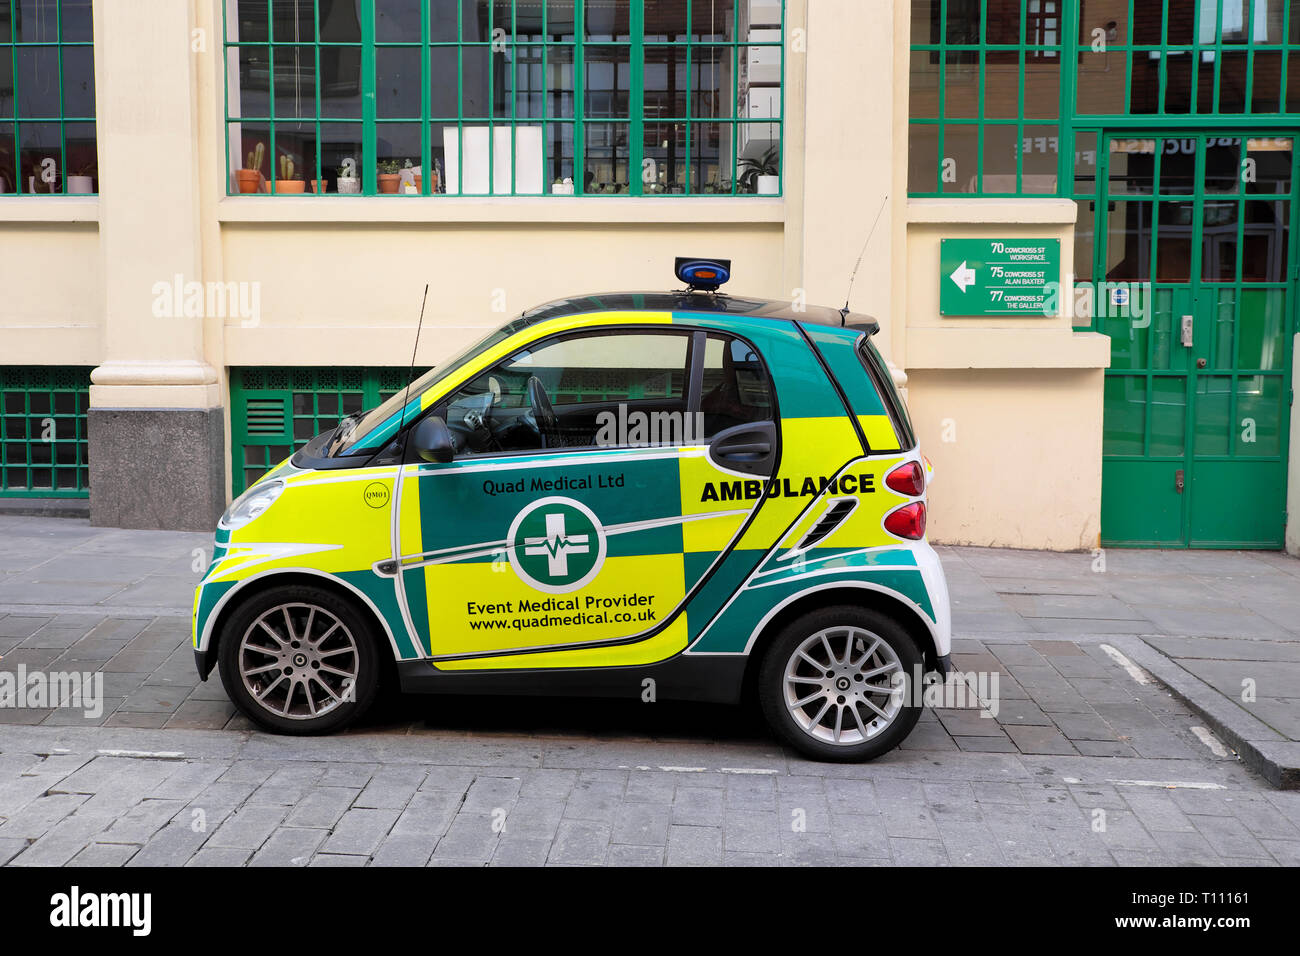 Quad Medical Smart Car event ambulance profile view parked outside a building in East London UK  KATHY DEWITT - Stock Image